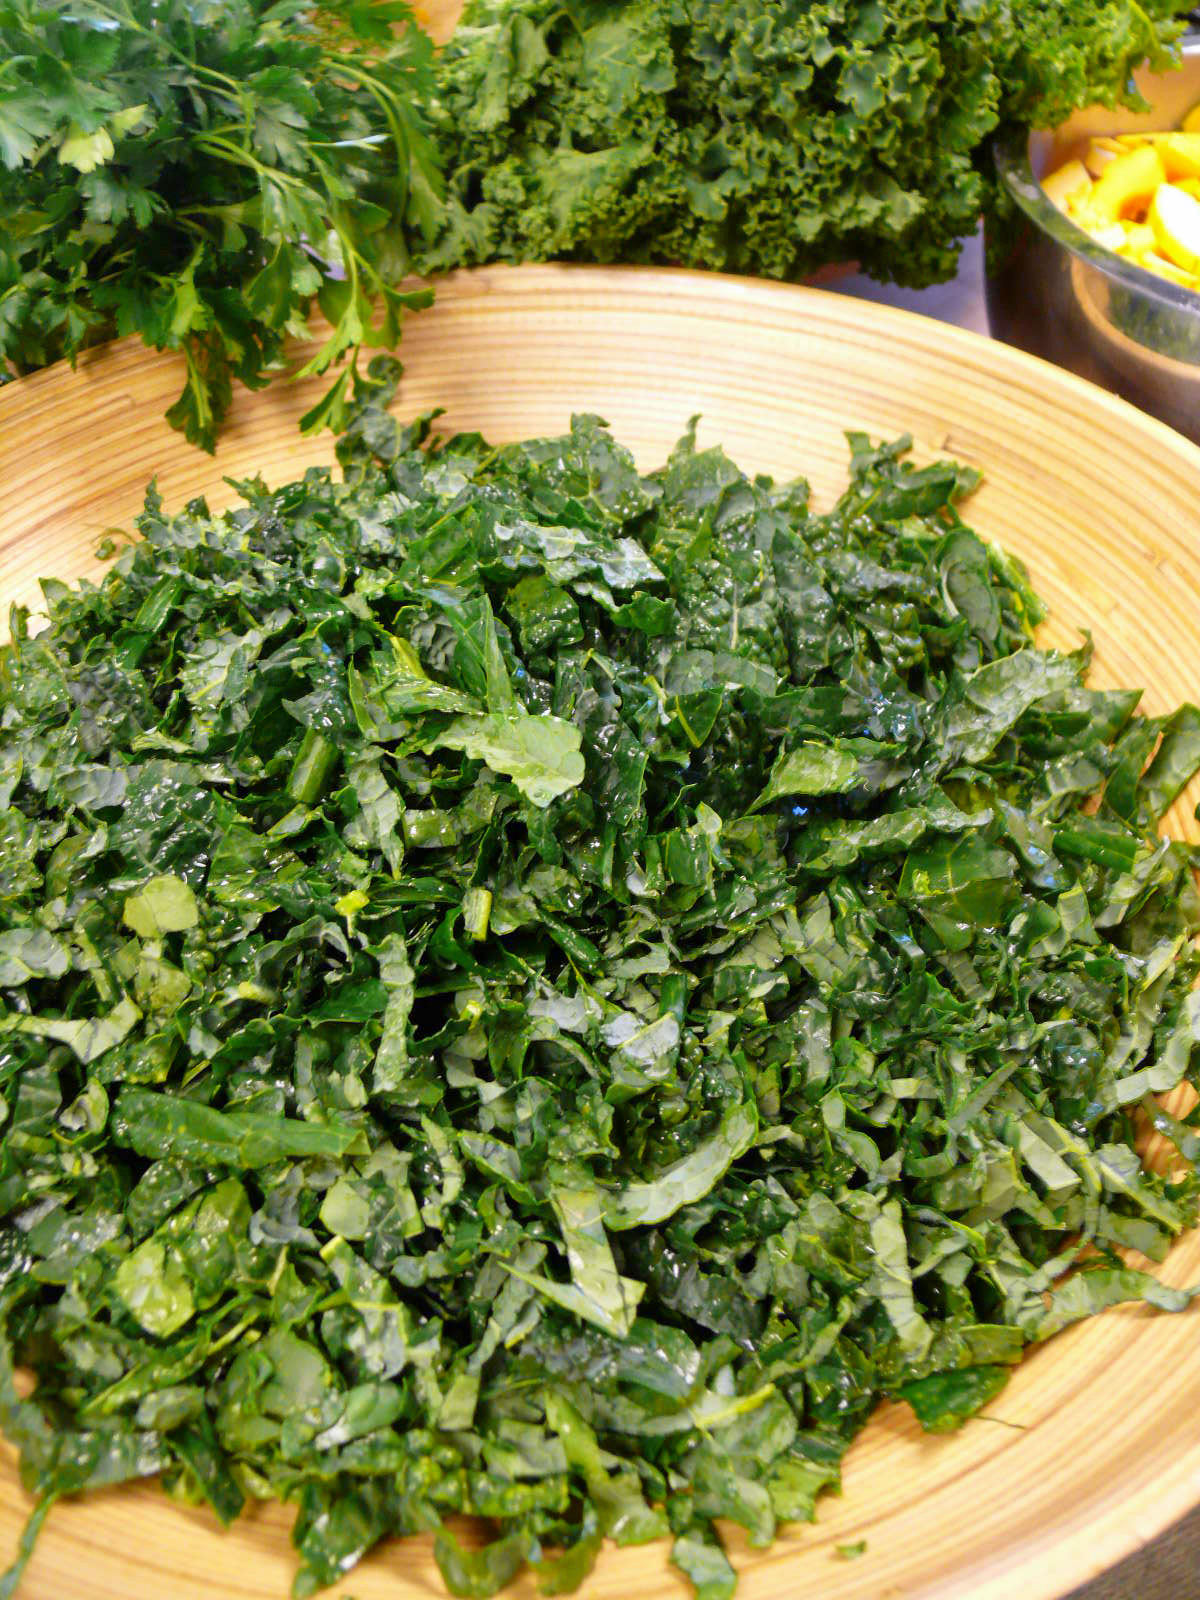 ... Cooking for a Healthy Future: Miso Kale with Winter & Delicata Squash